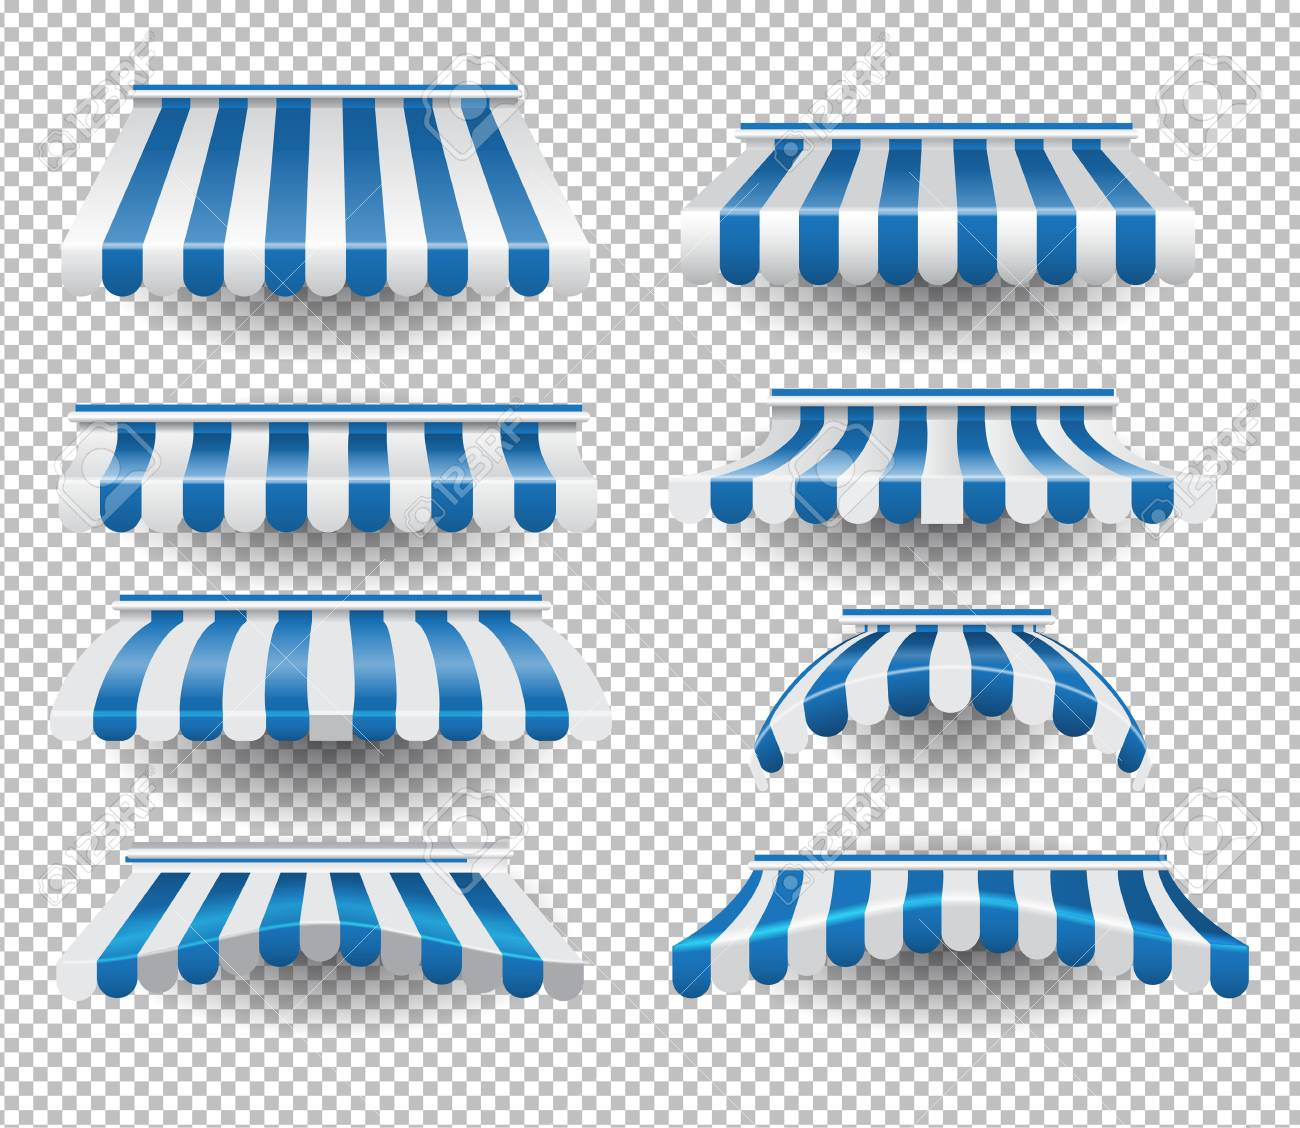 Vector set of white and blue colored striped tents of different shapes on transparent background - 111654805